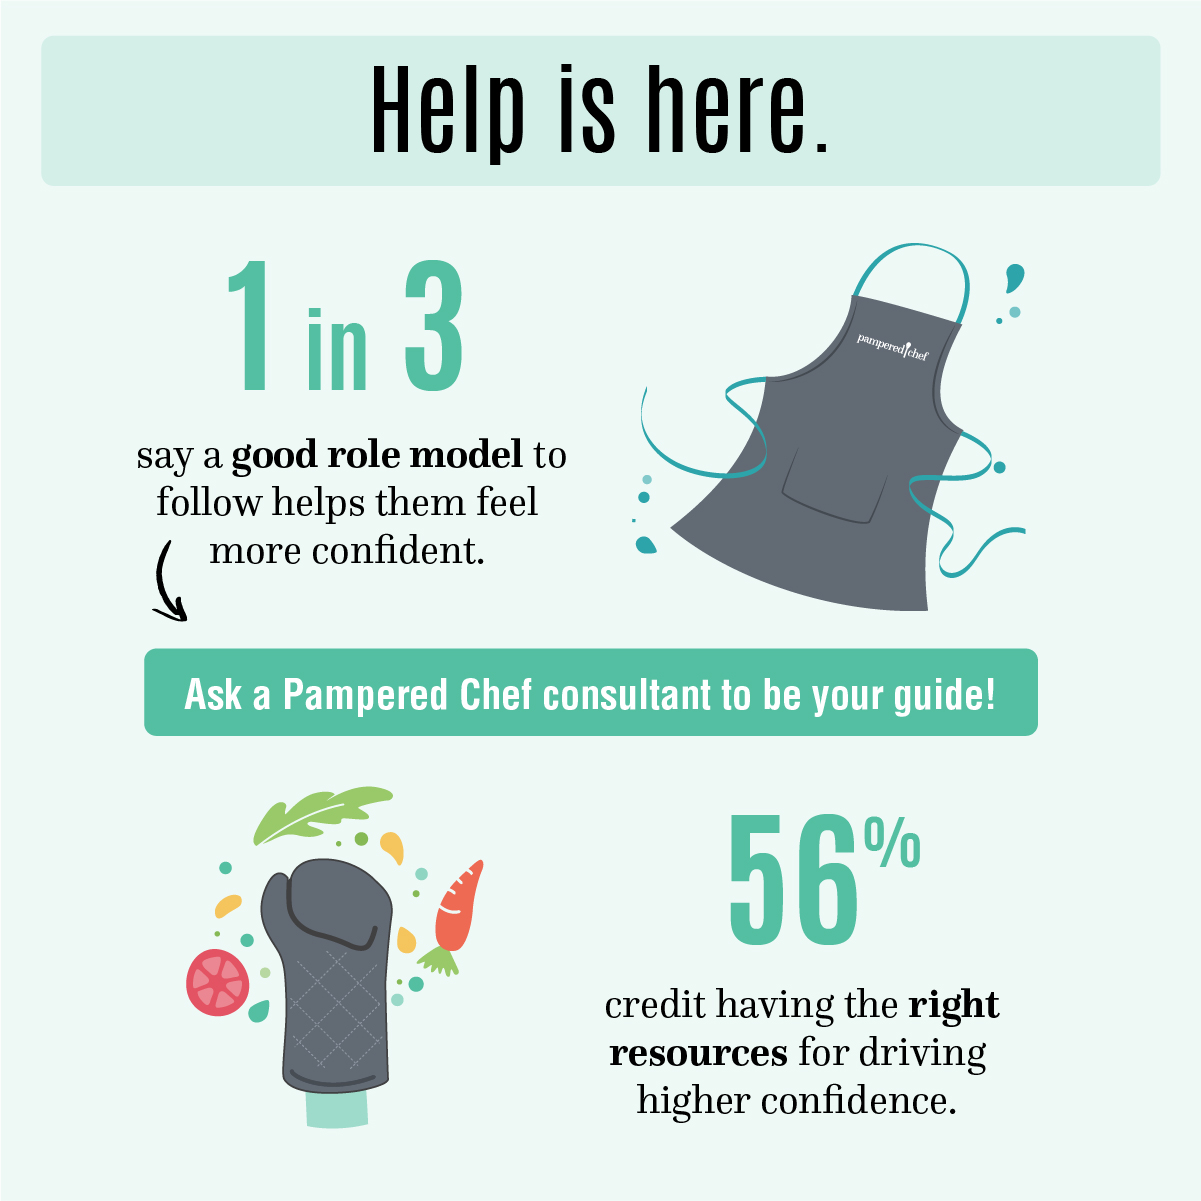 Help is here. 1 in 3 say a good role model to follow helps them feel more confident. Ask a Pampered Chef consultant to be your guide! 56% credit having the right resources for driving higher confidence.